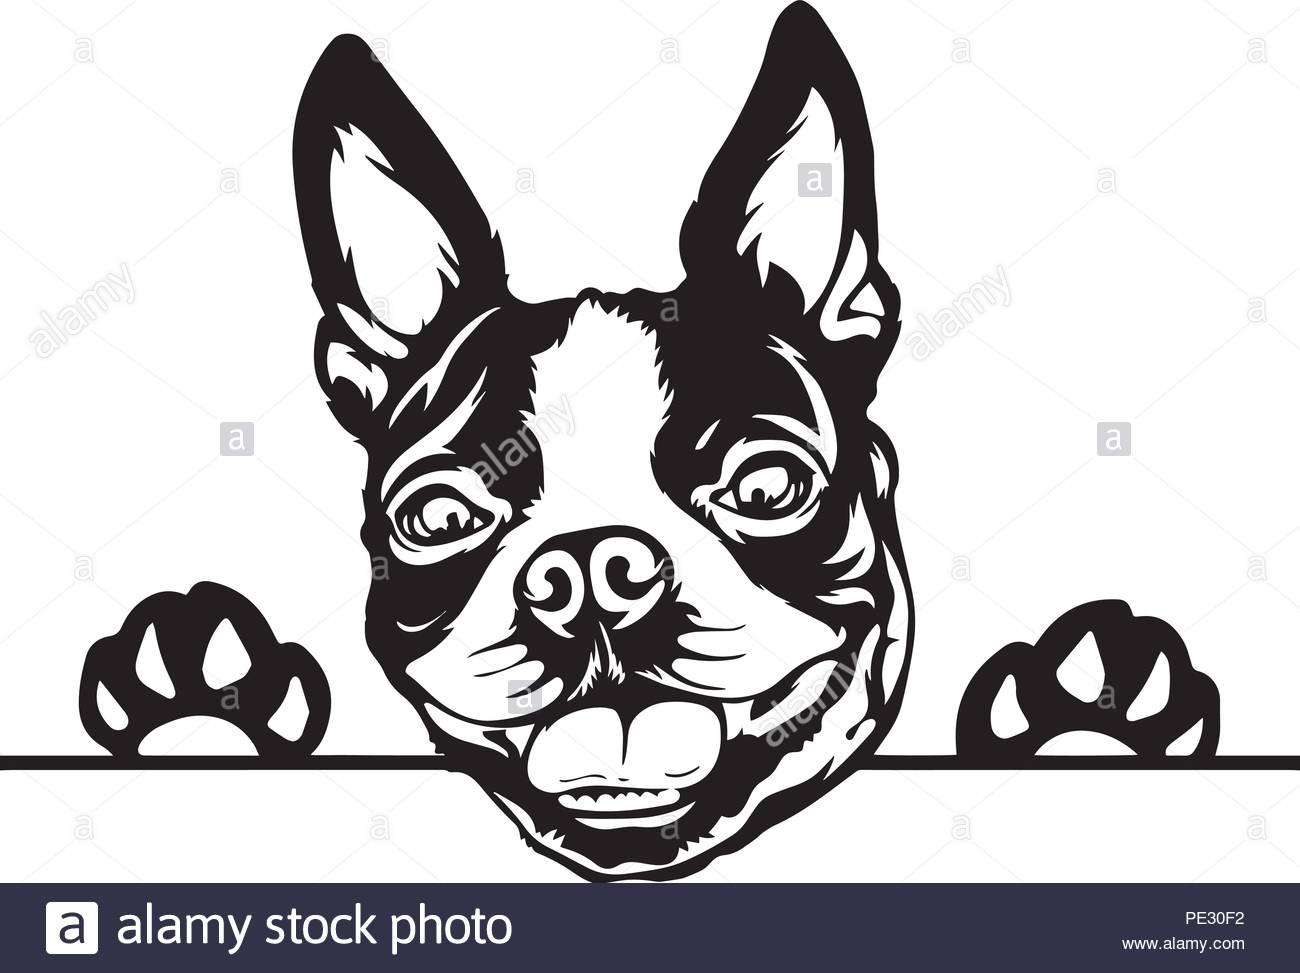 Boston Terrier Bostie Dog Breed Pet Puppy Isolated Head Face Stock.